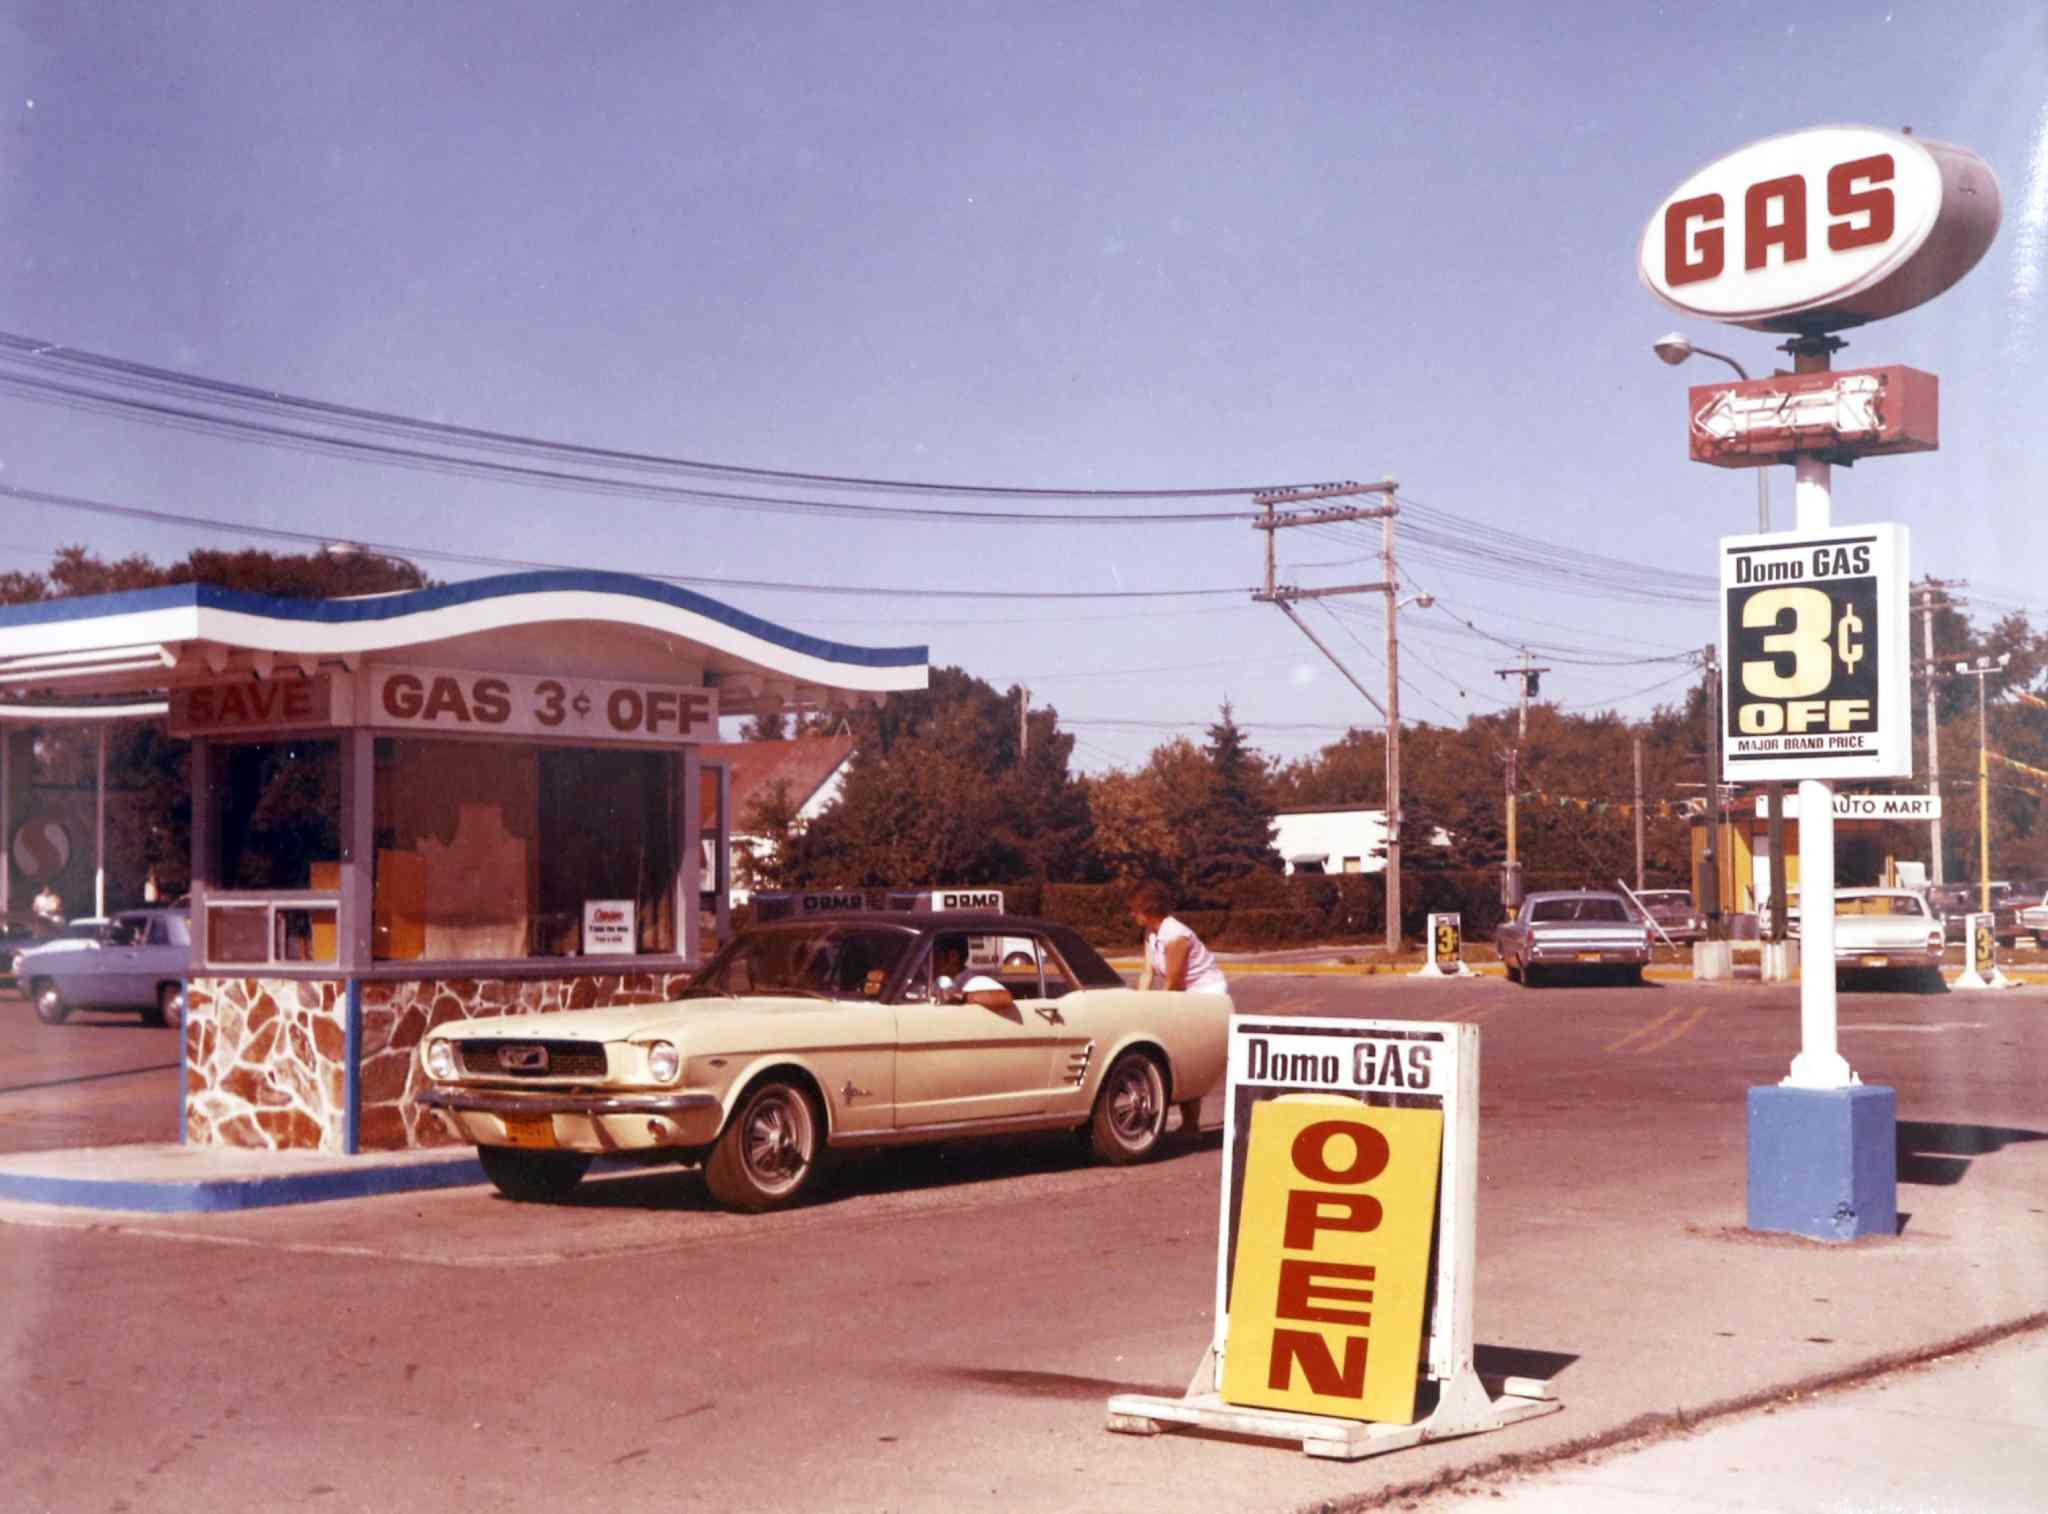 Domo gas bar on Ellice Ave. in the 1960s.